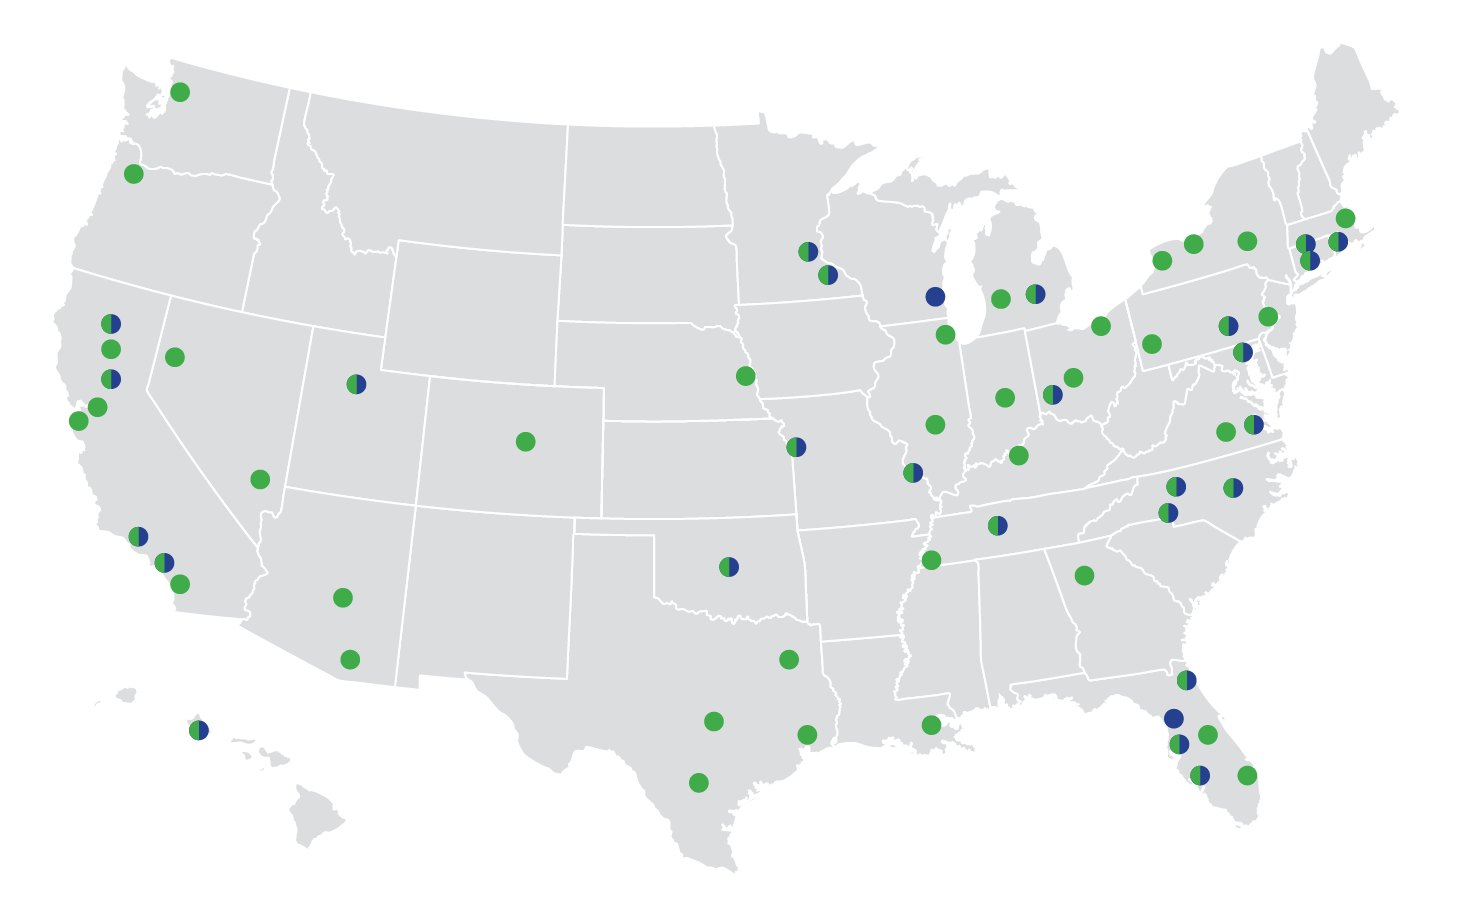 Map of Network